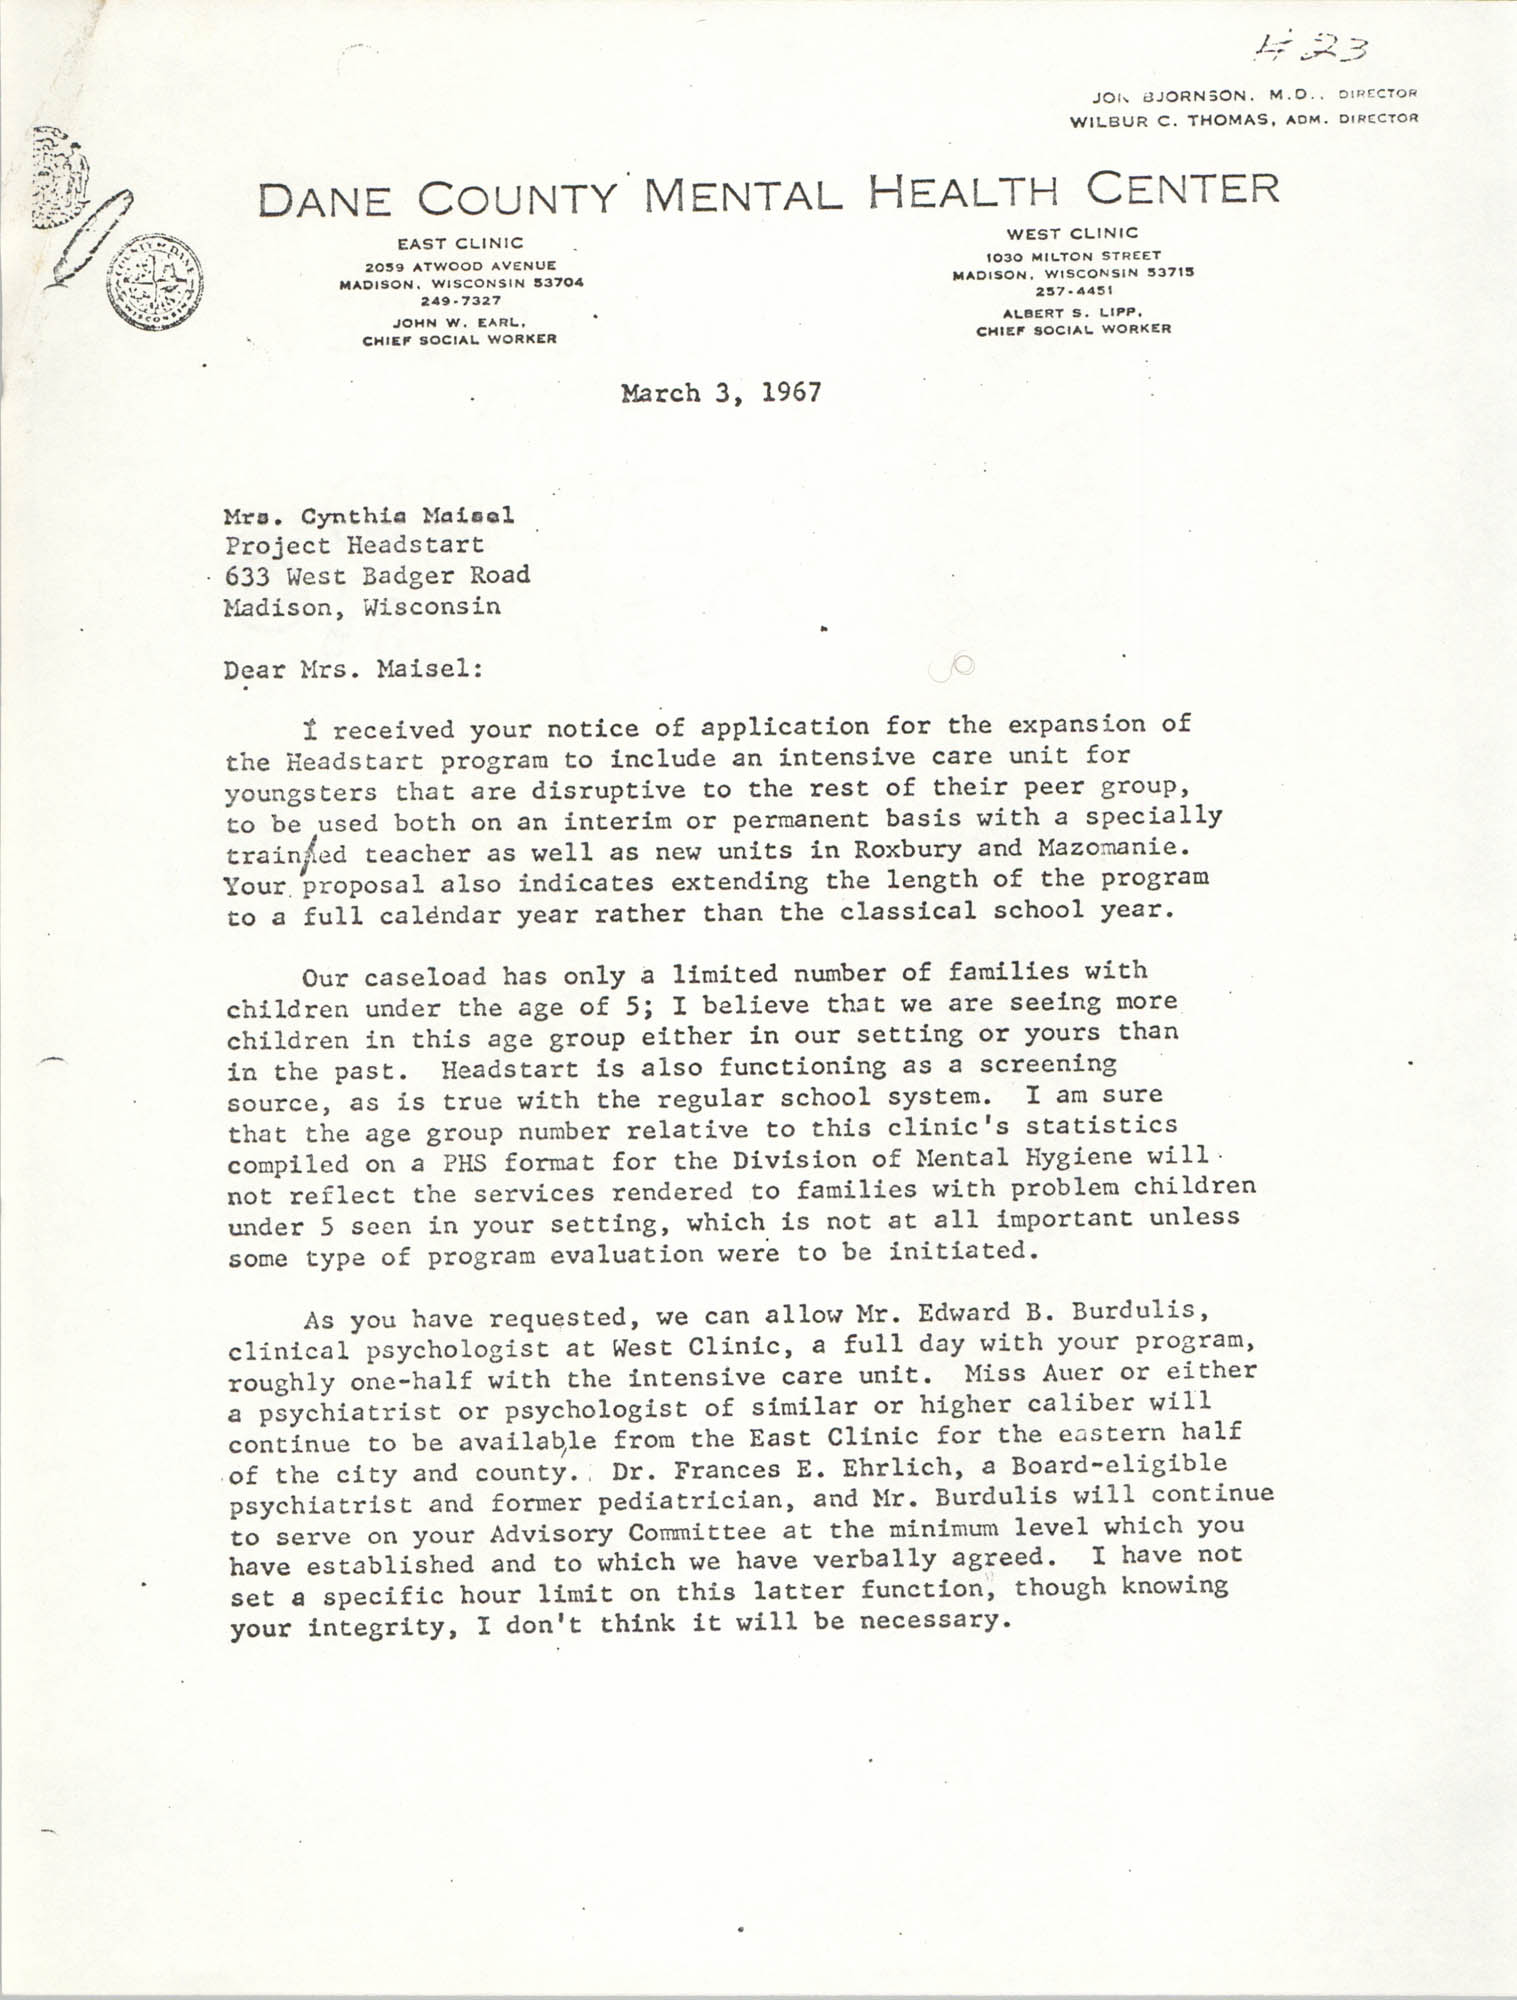 Letter from Jon Bjornson to Cynthia Maisel, March 3, 1967, Page 1